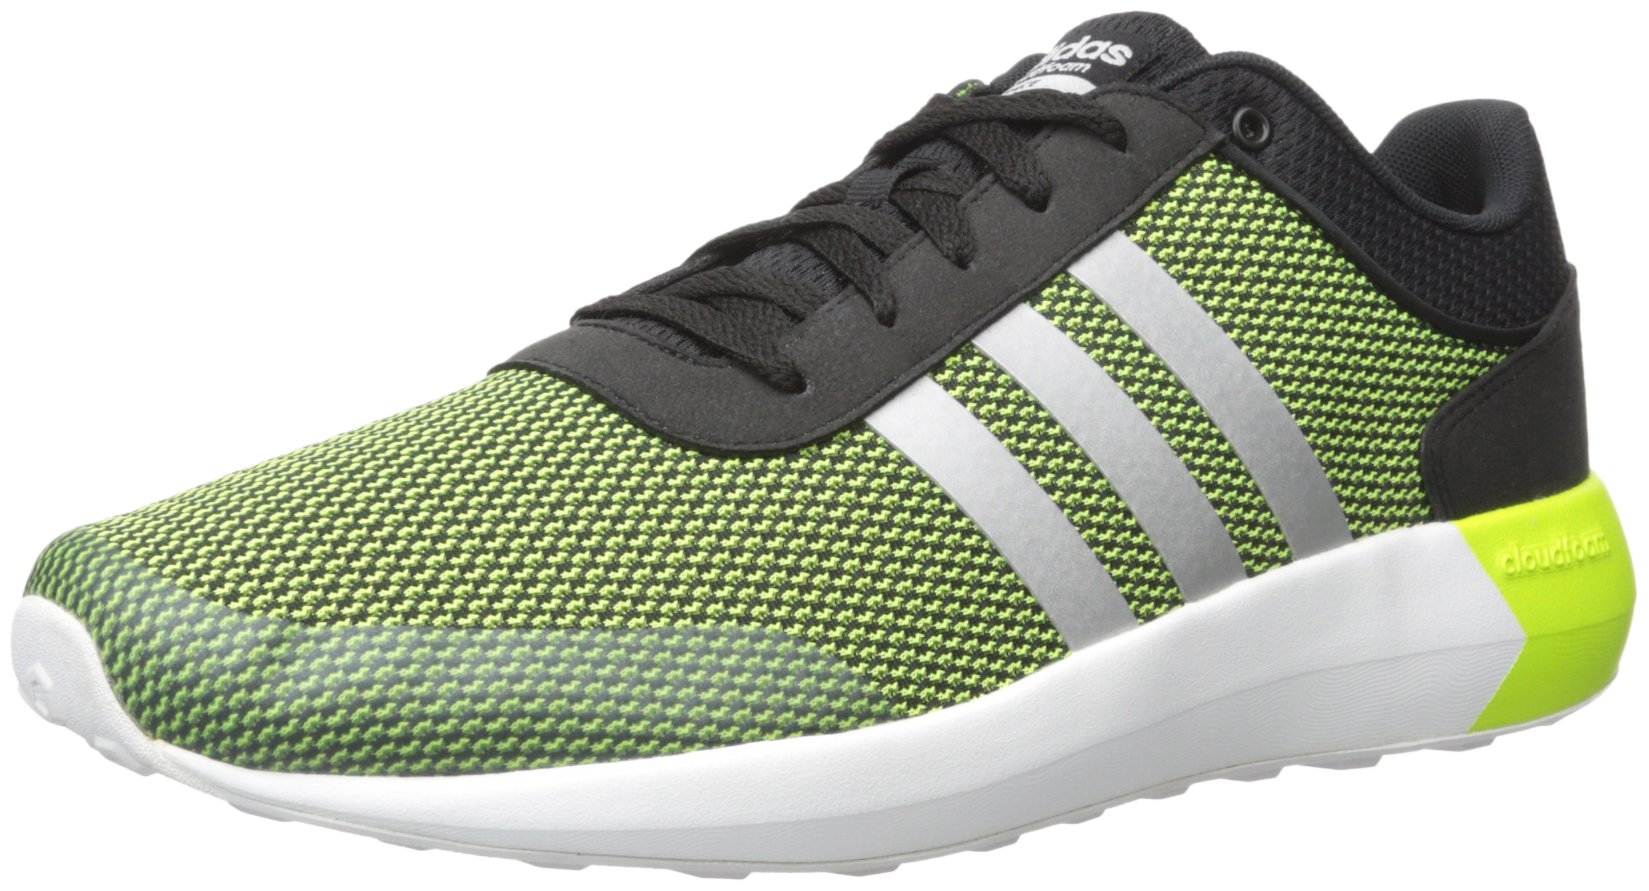 adidas Originals Men's Cloudfoam Race Running Shoe, Black/White/Tech Grey, 7.5 M US